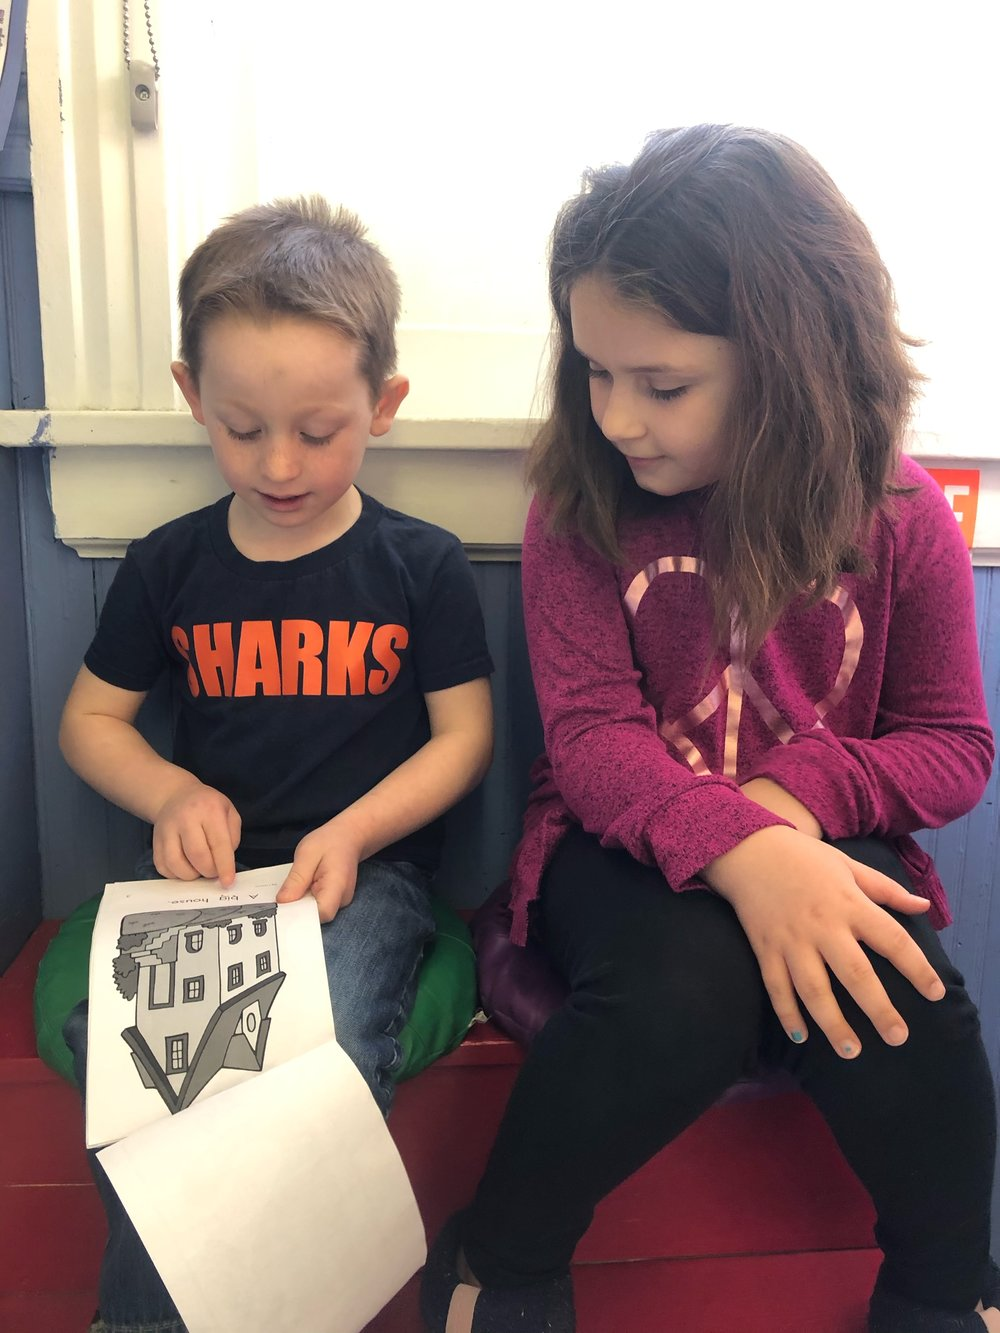 Max did a great job reading his book to Lydia!